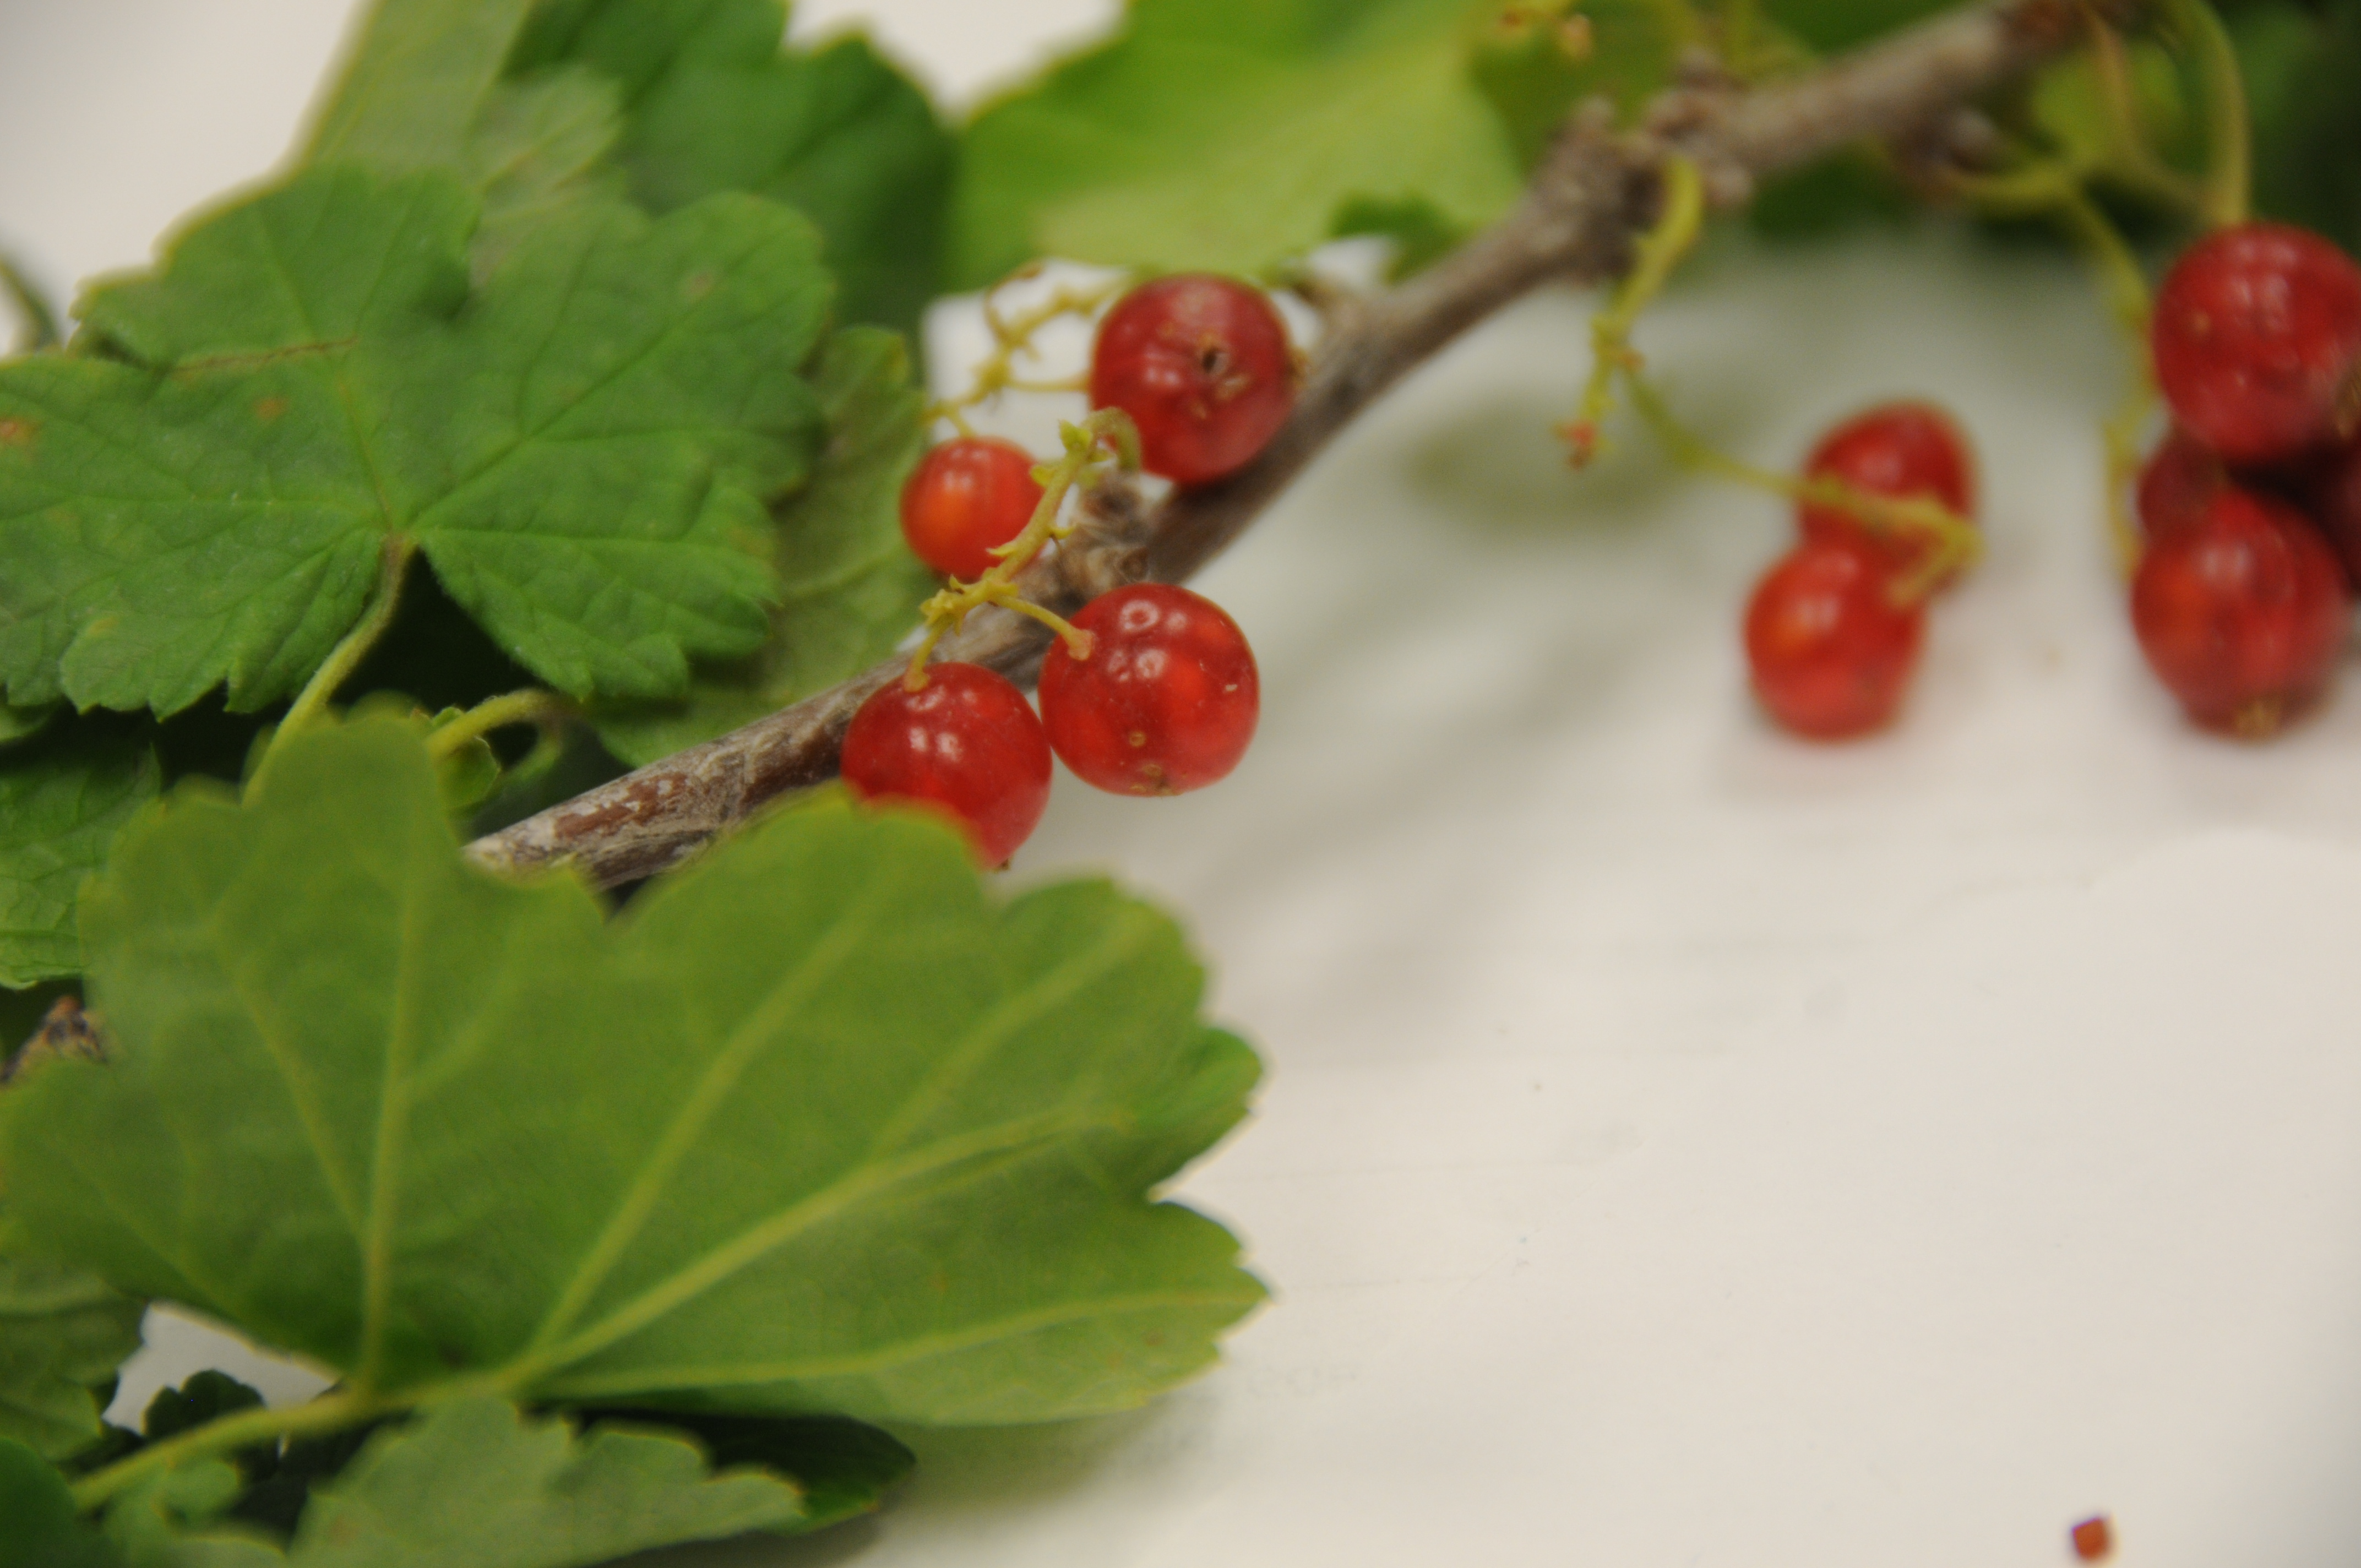 Currant And Gooseberry Currant Fruit Fly Gooseberry